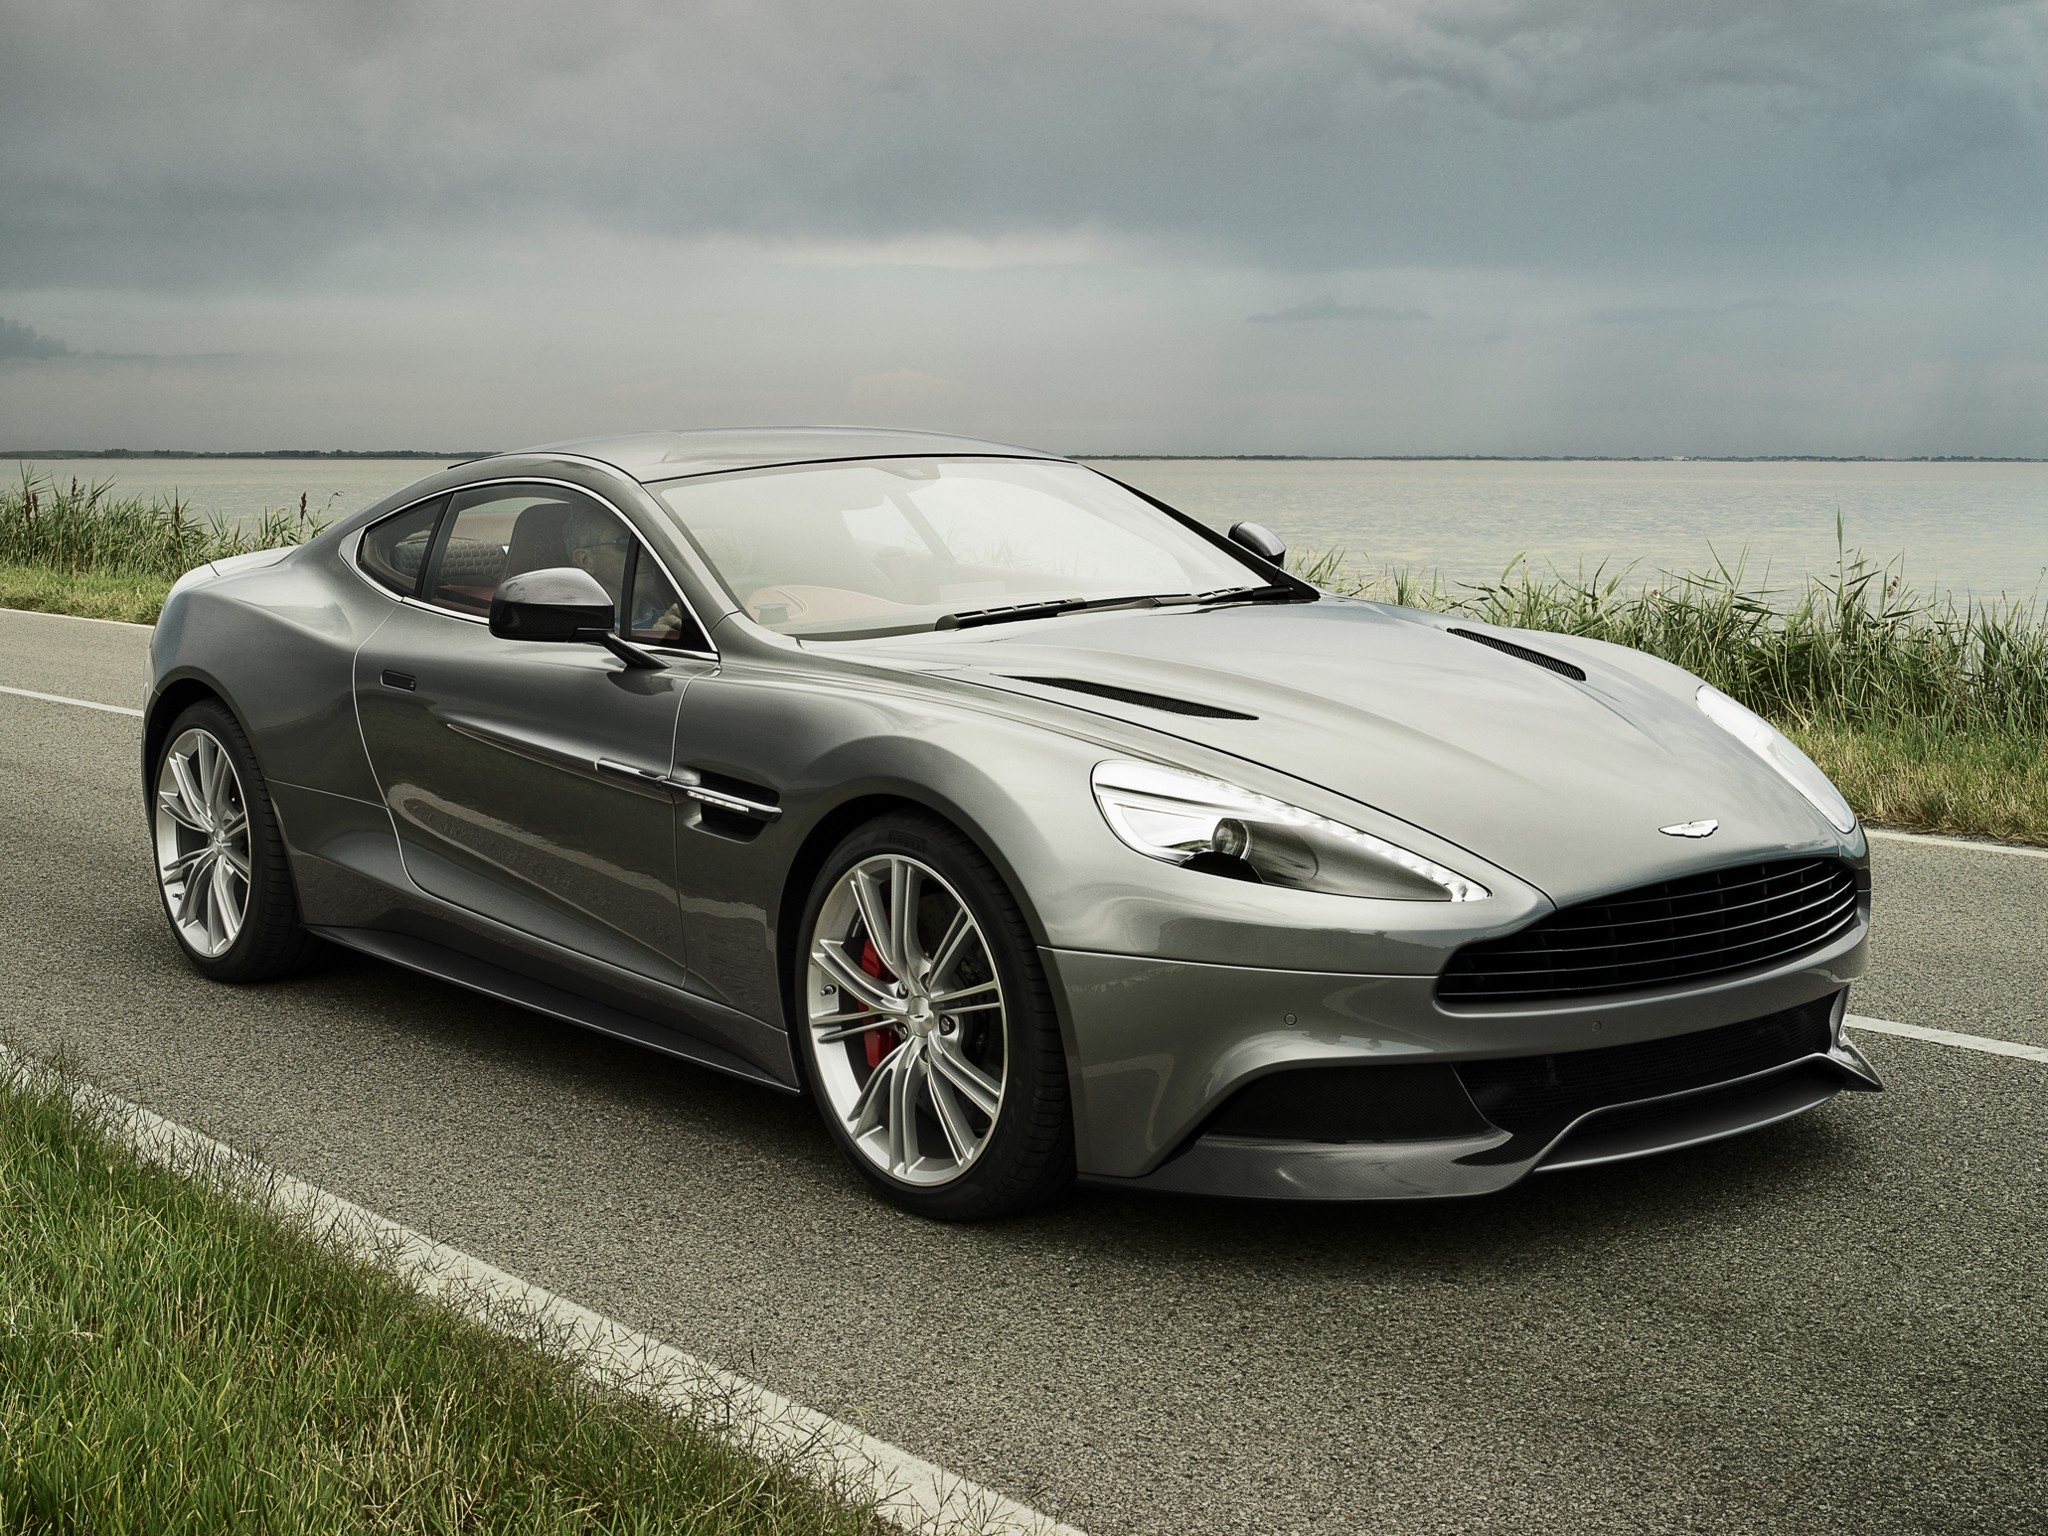 Aston Martin Vanquish Wallpapers Car wallpapers HD 2048x1536